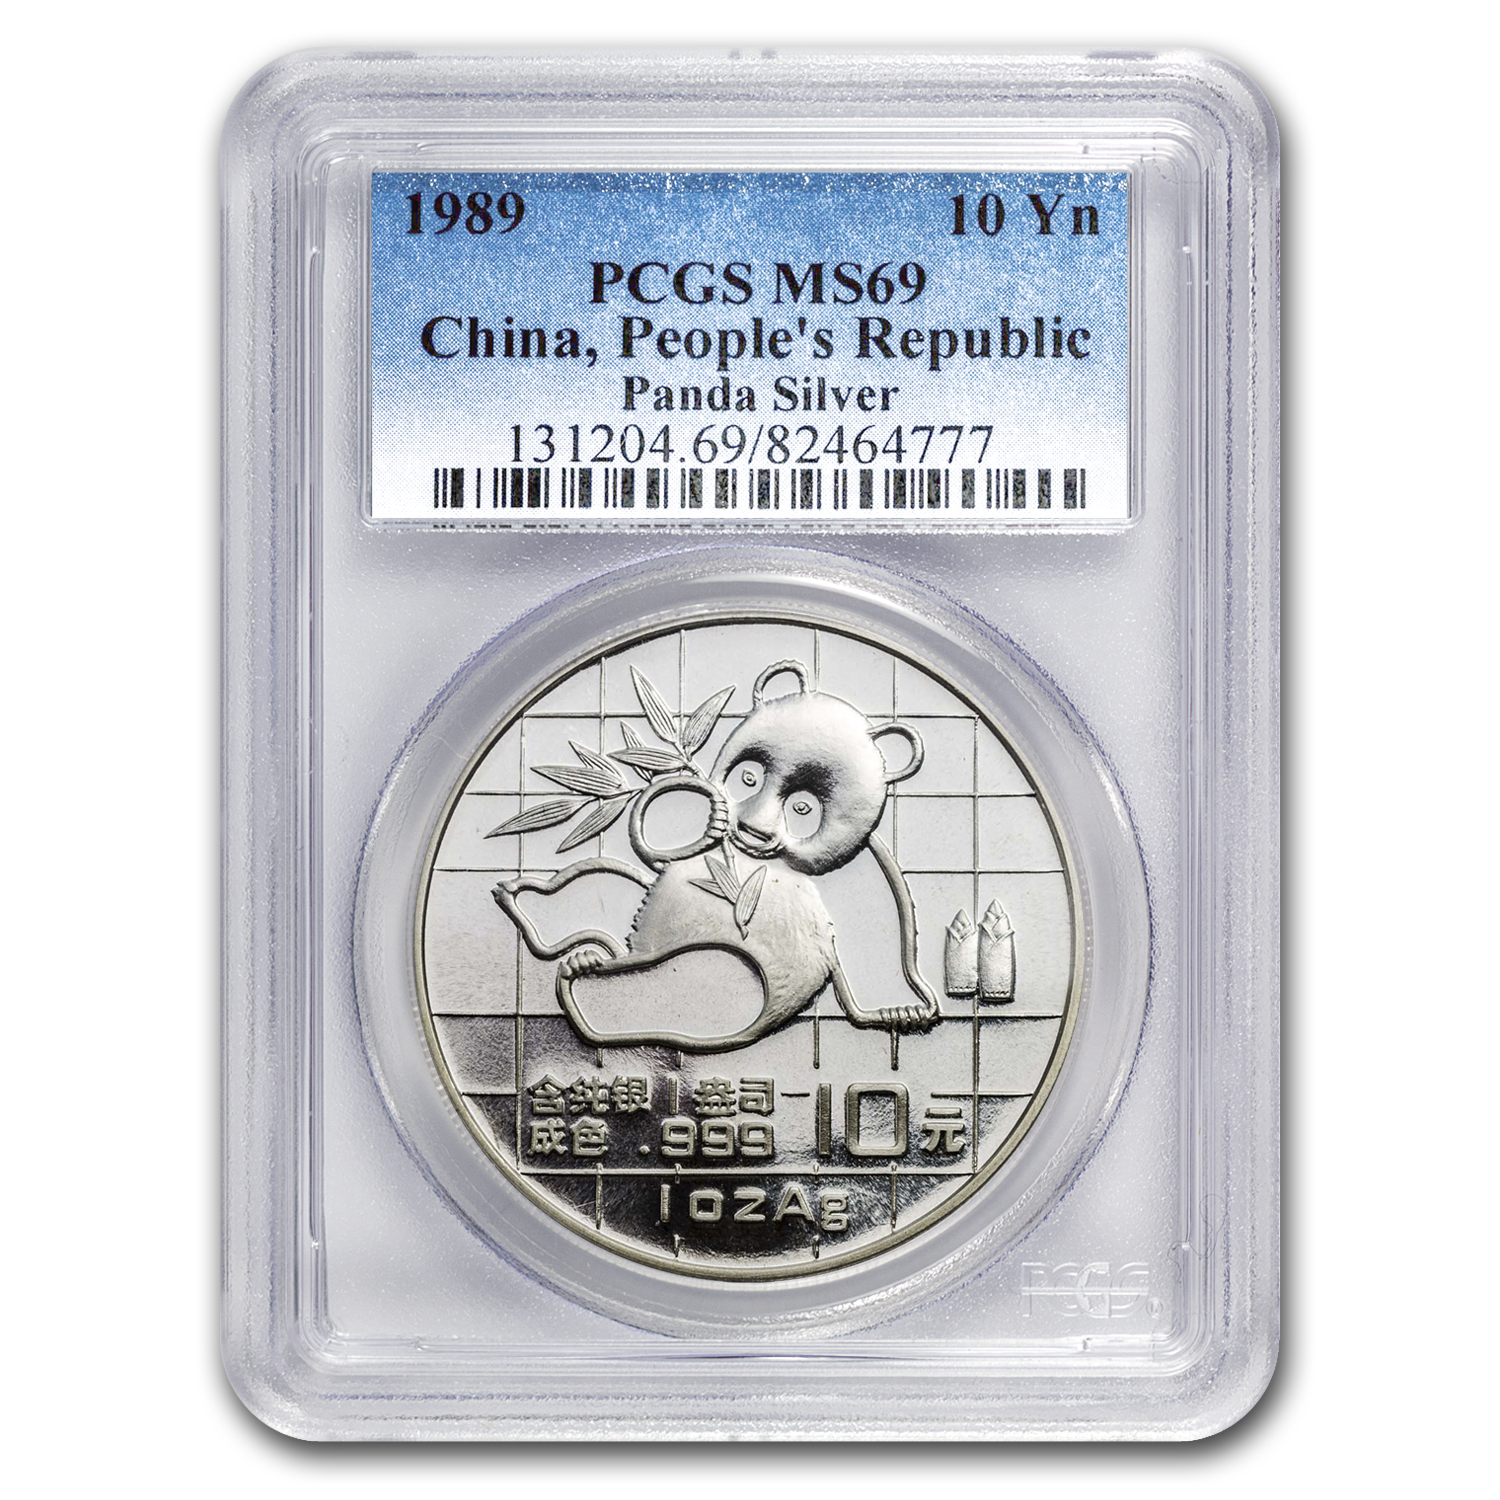 1989 China 1 oz Silver Panda MS-69 PCGS